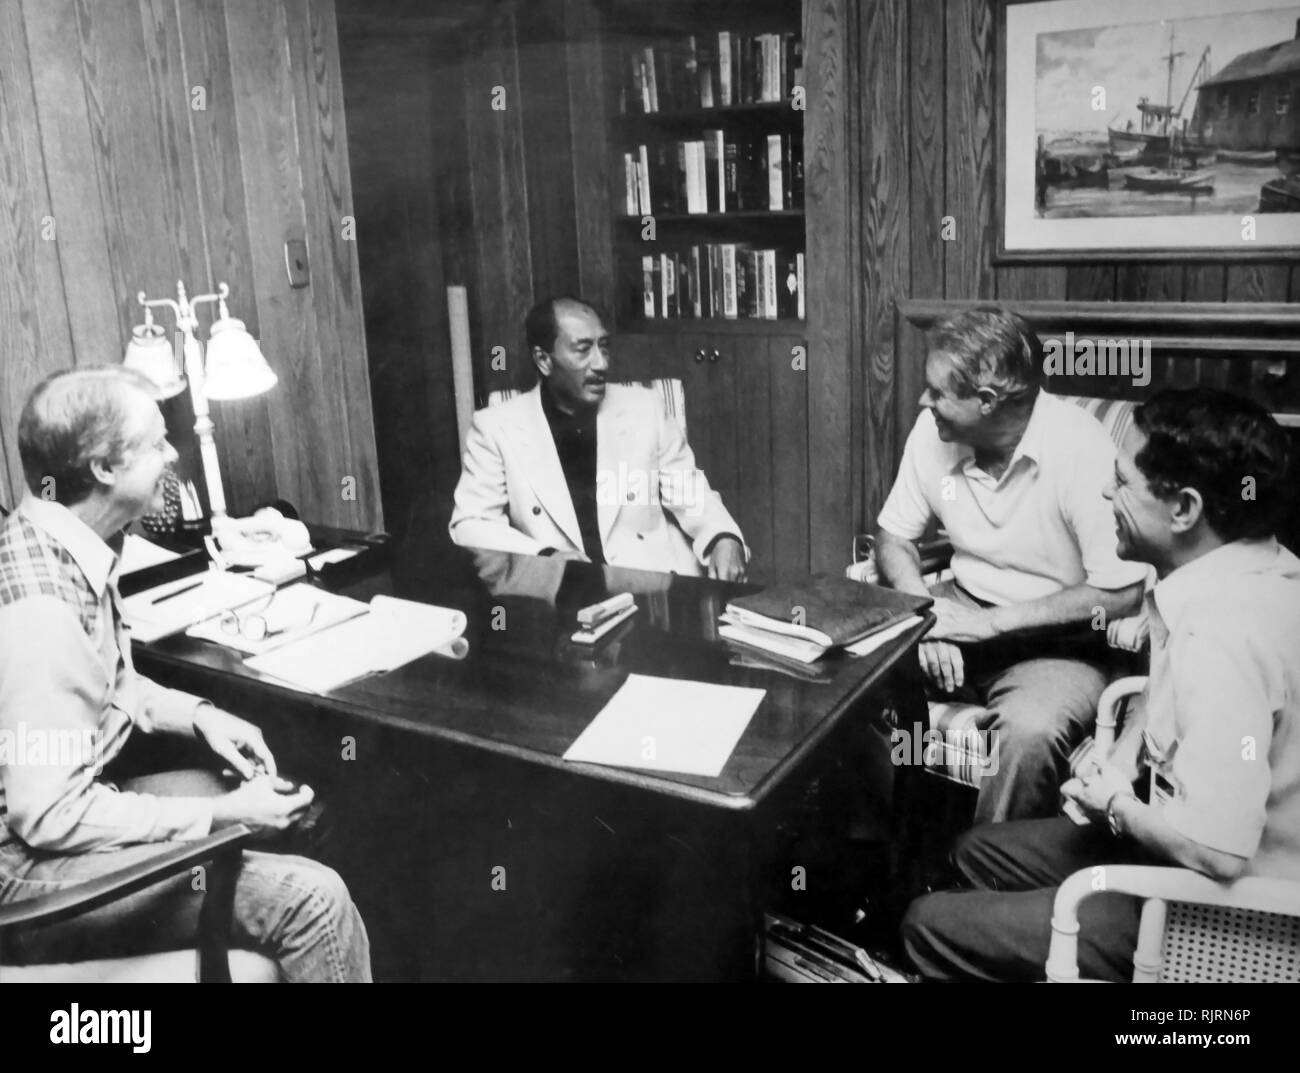 Meeting during the Middle East, Camp David Peace Negotiations, 1979 session with Jimmy Carter (US President), Anwar Sadat (Egyptian President), Cyrus Vance (US Secretary of State) and Osama El-Baz (Egyptian diplomat). Stock Photo